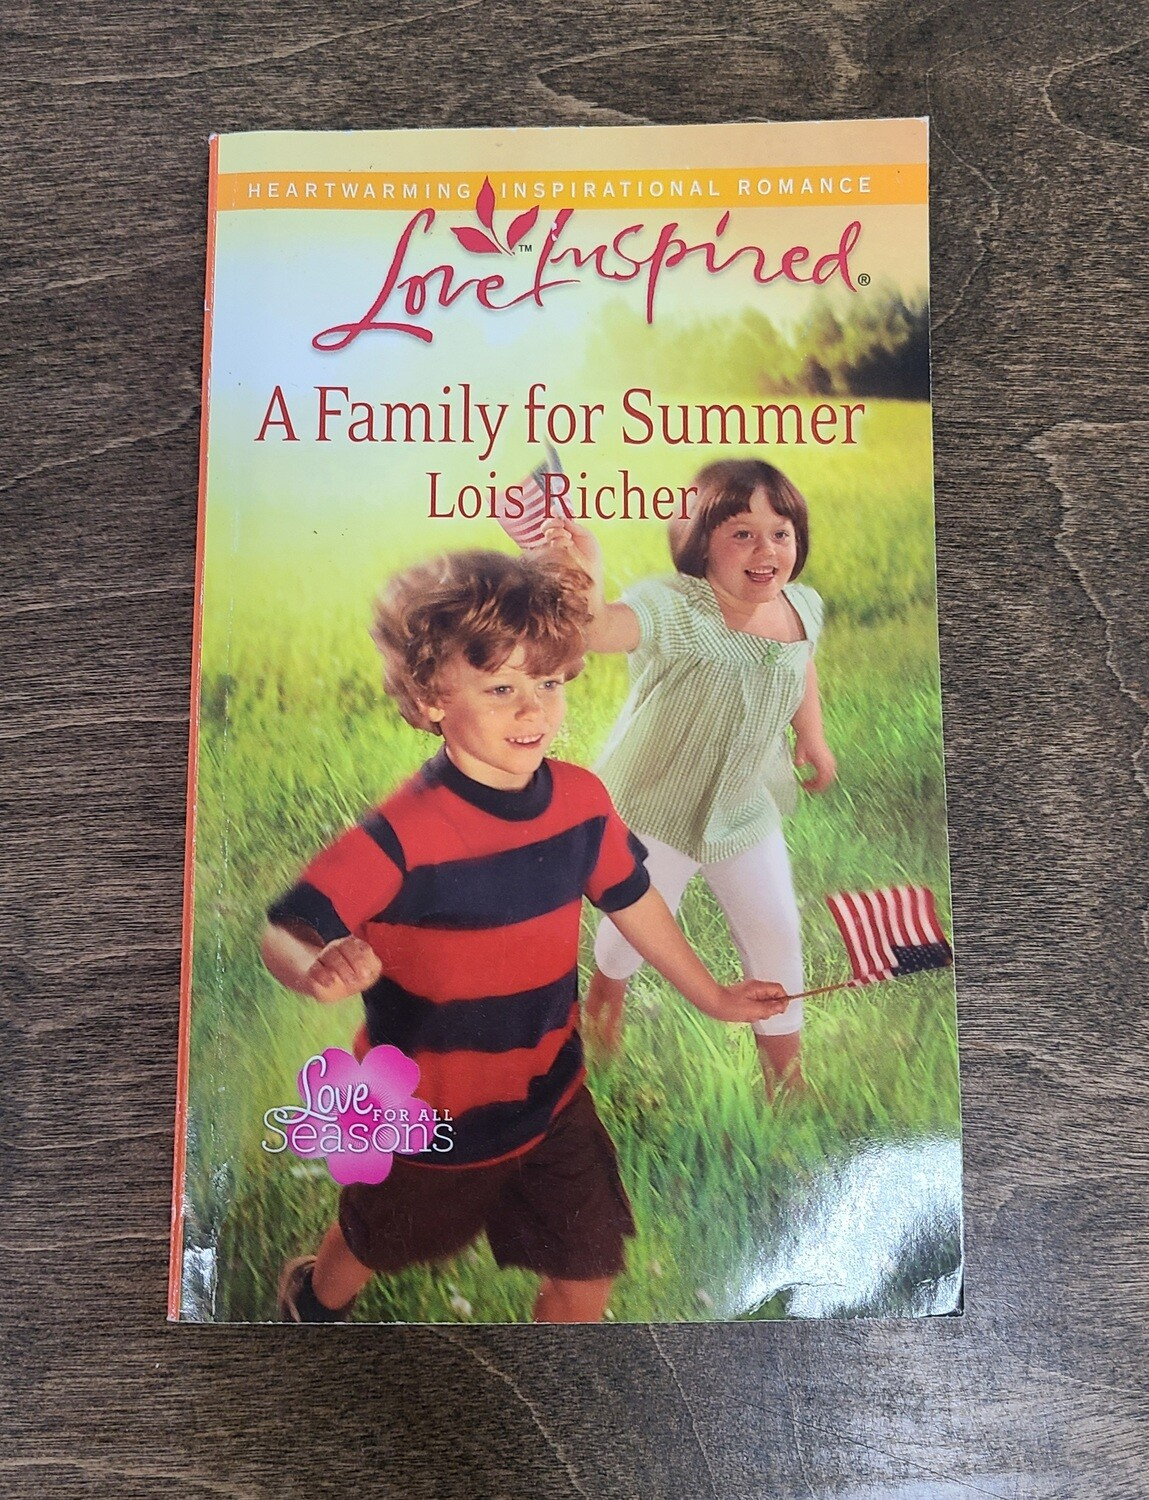 A Family for Summer by Lois Richer